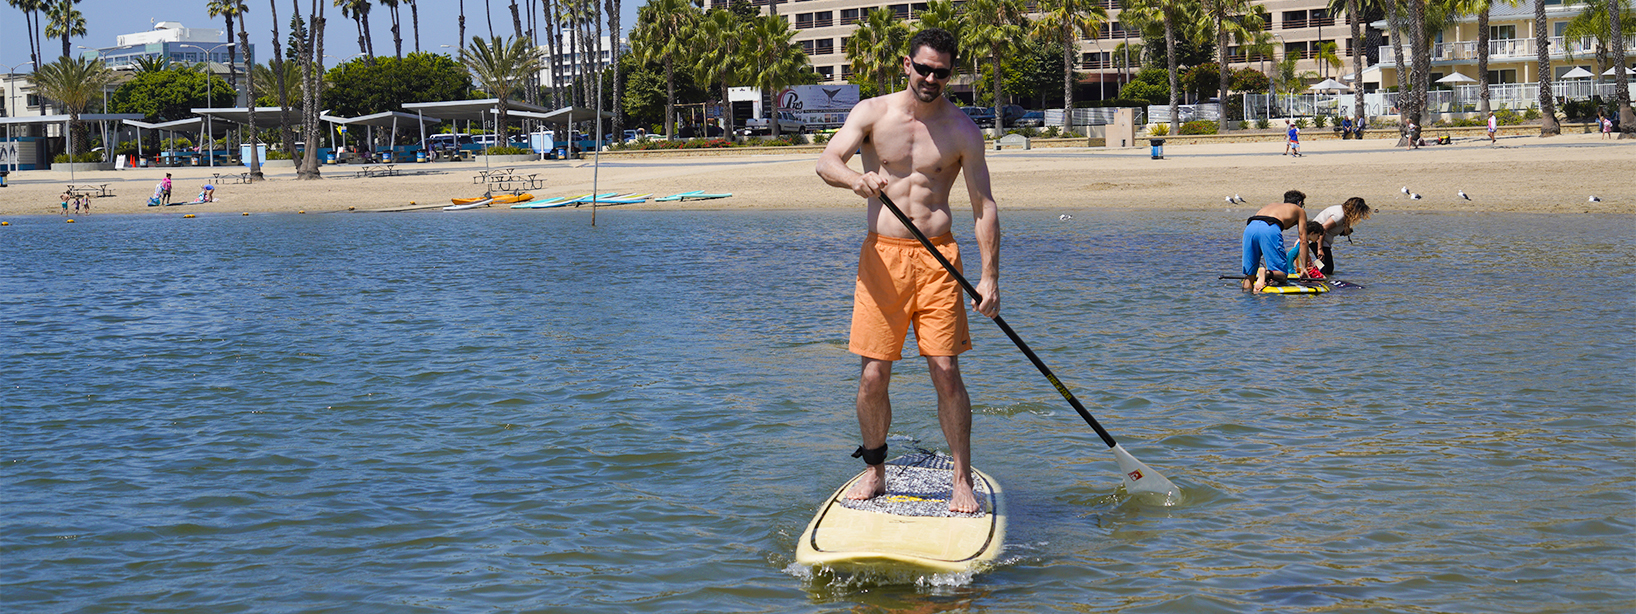 Doctor Michael Wells paddle surfing